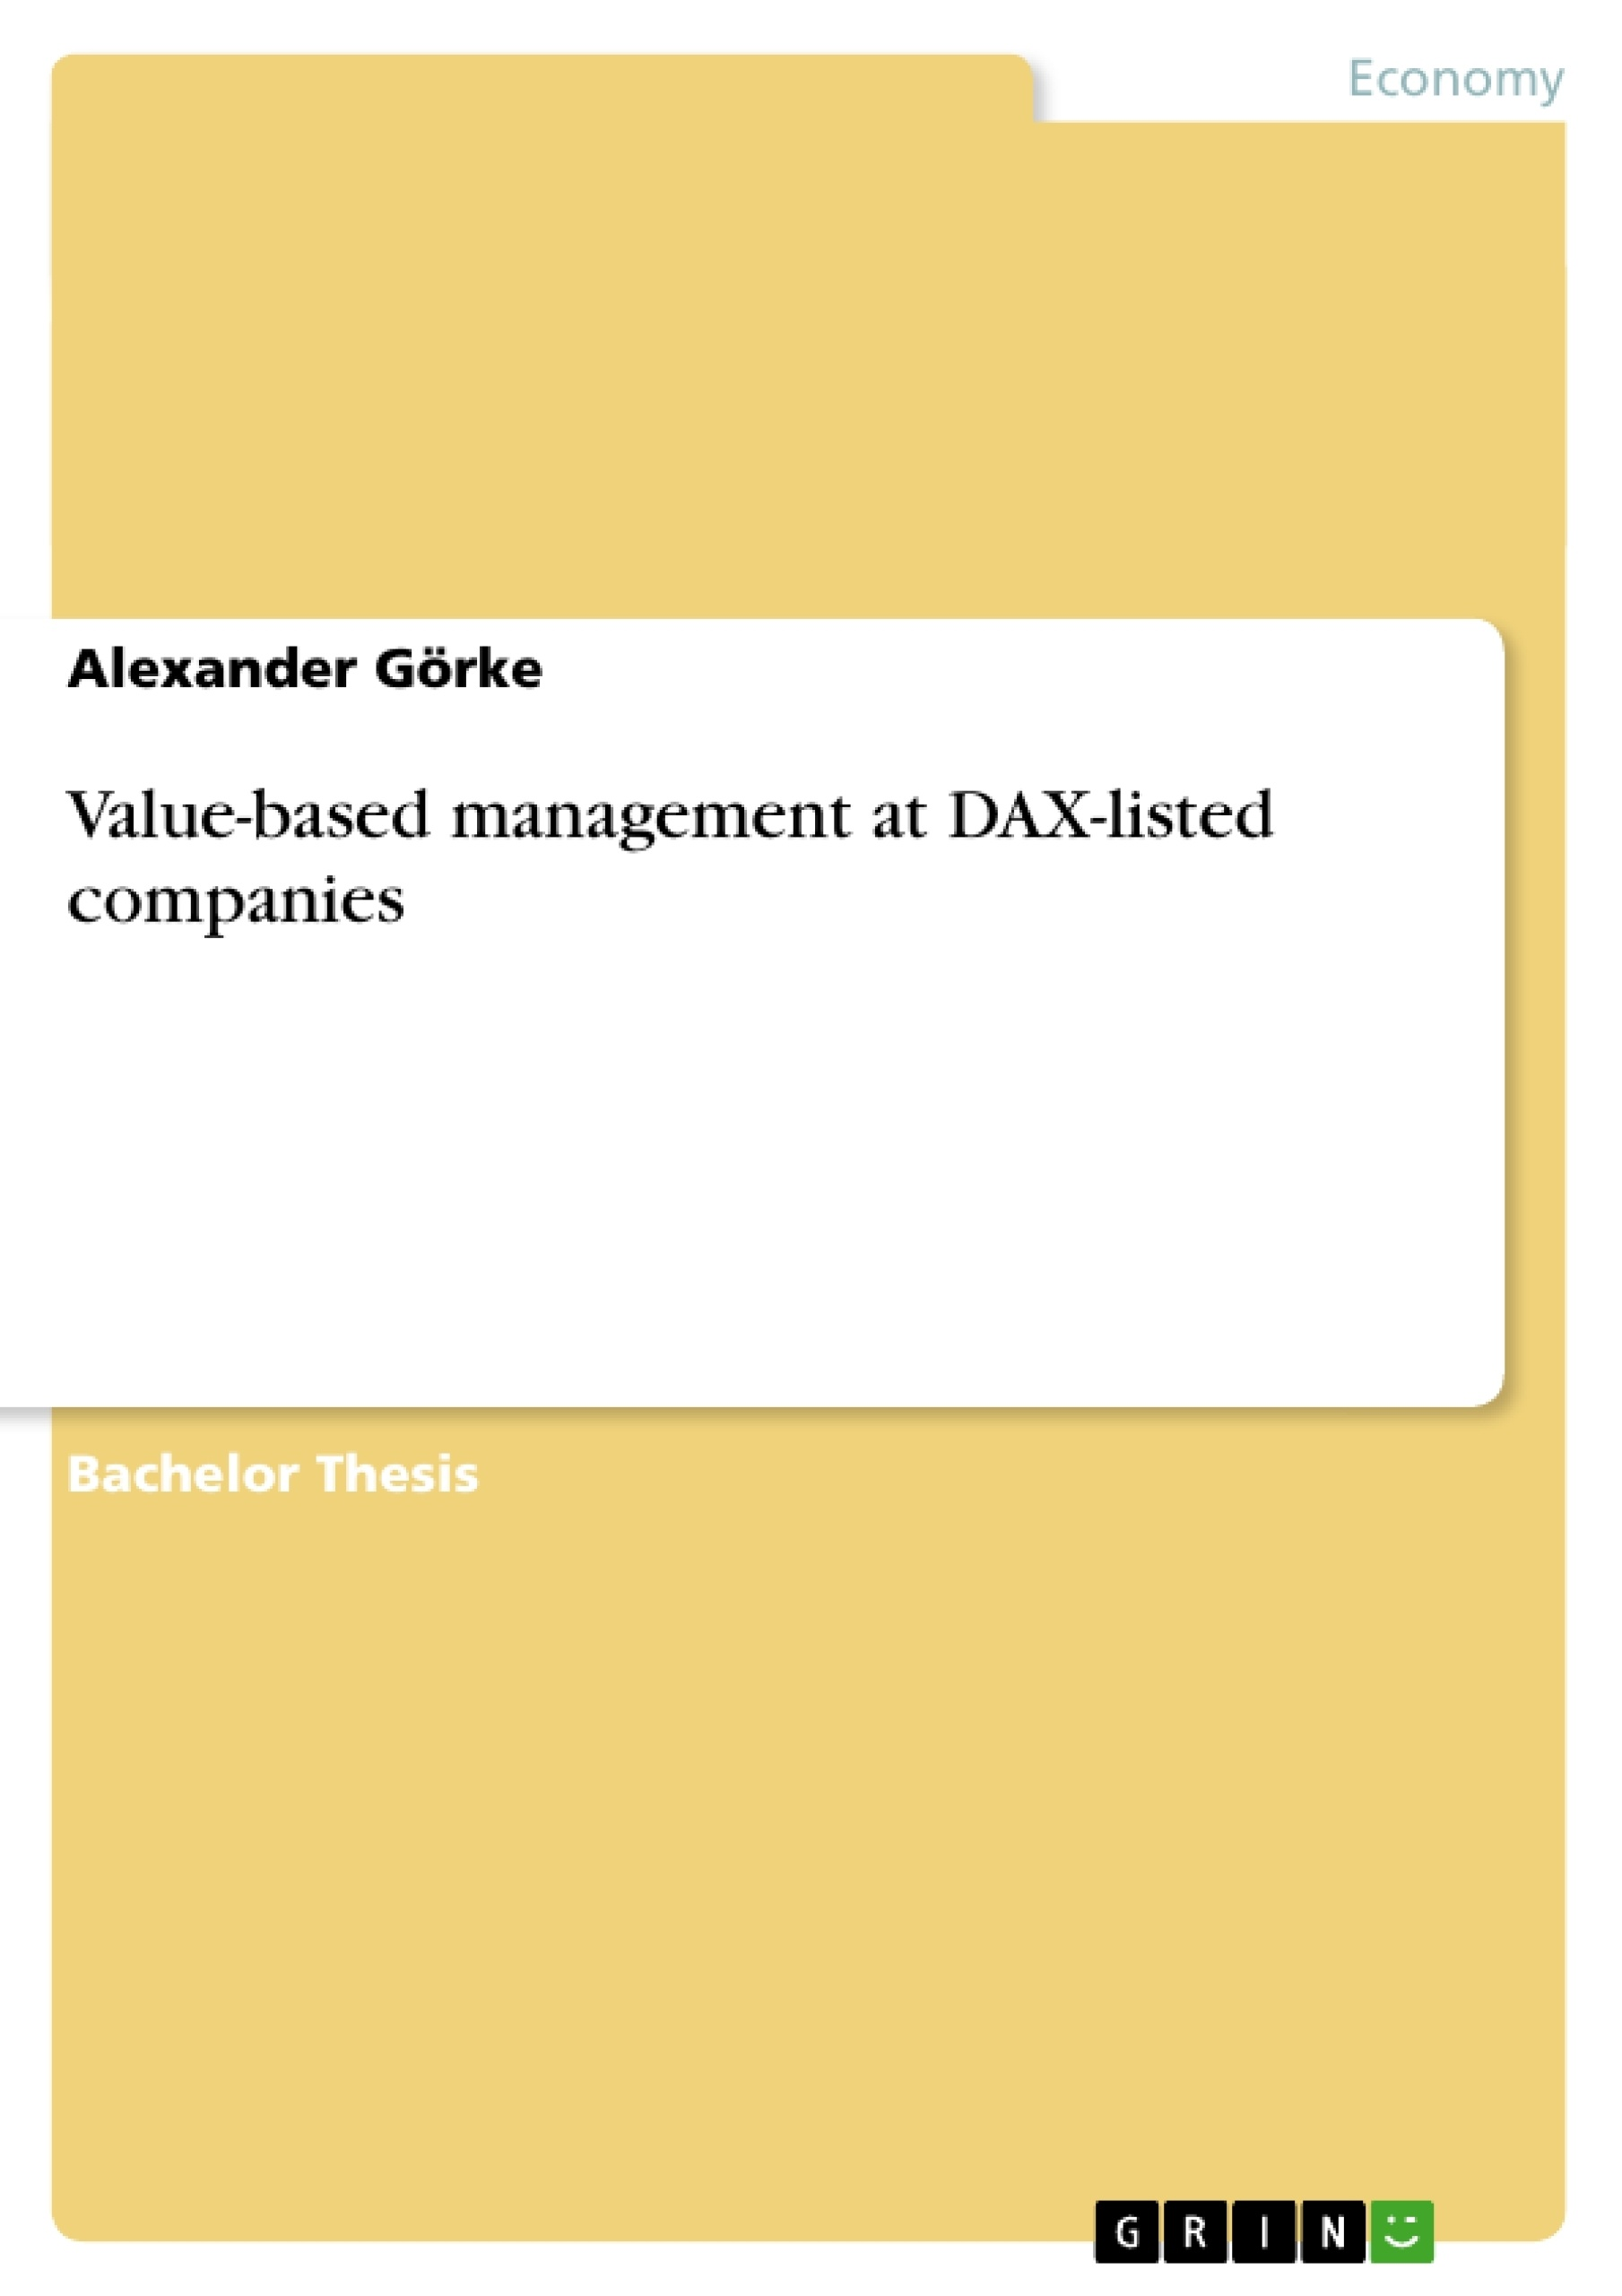 GRIN - Value-based management at DAX-listed companies